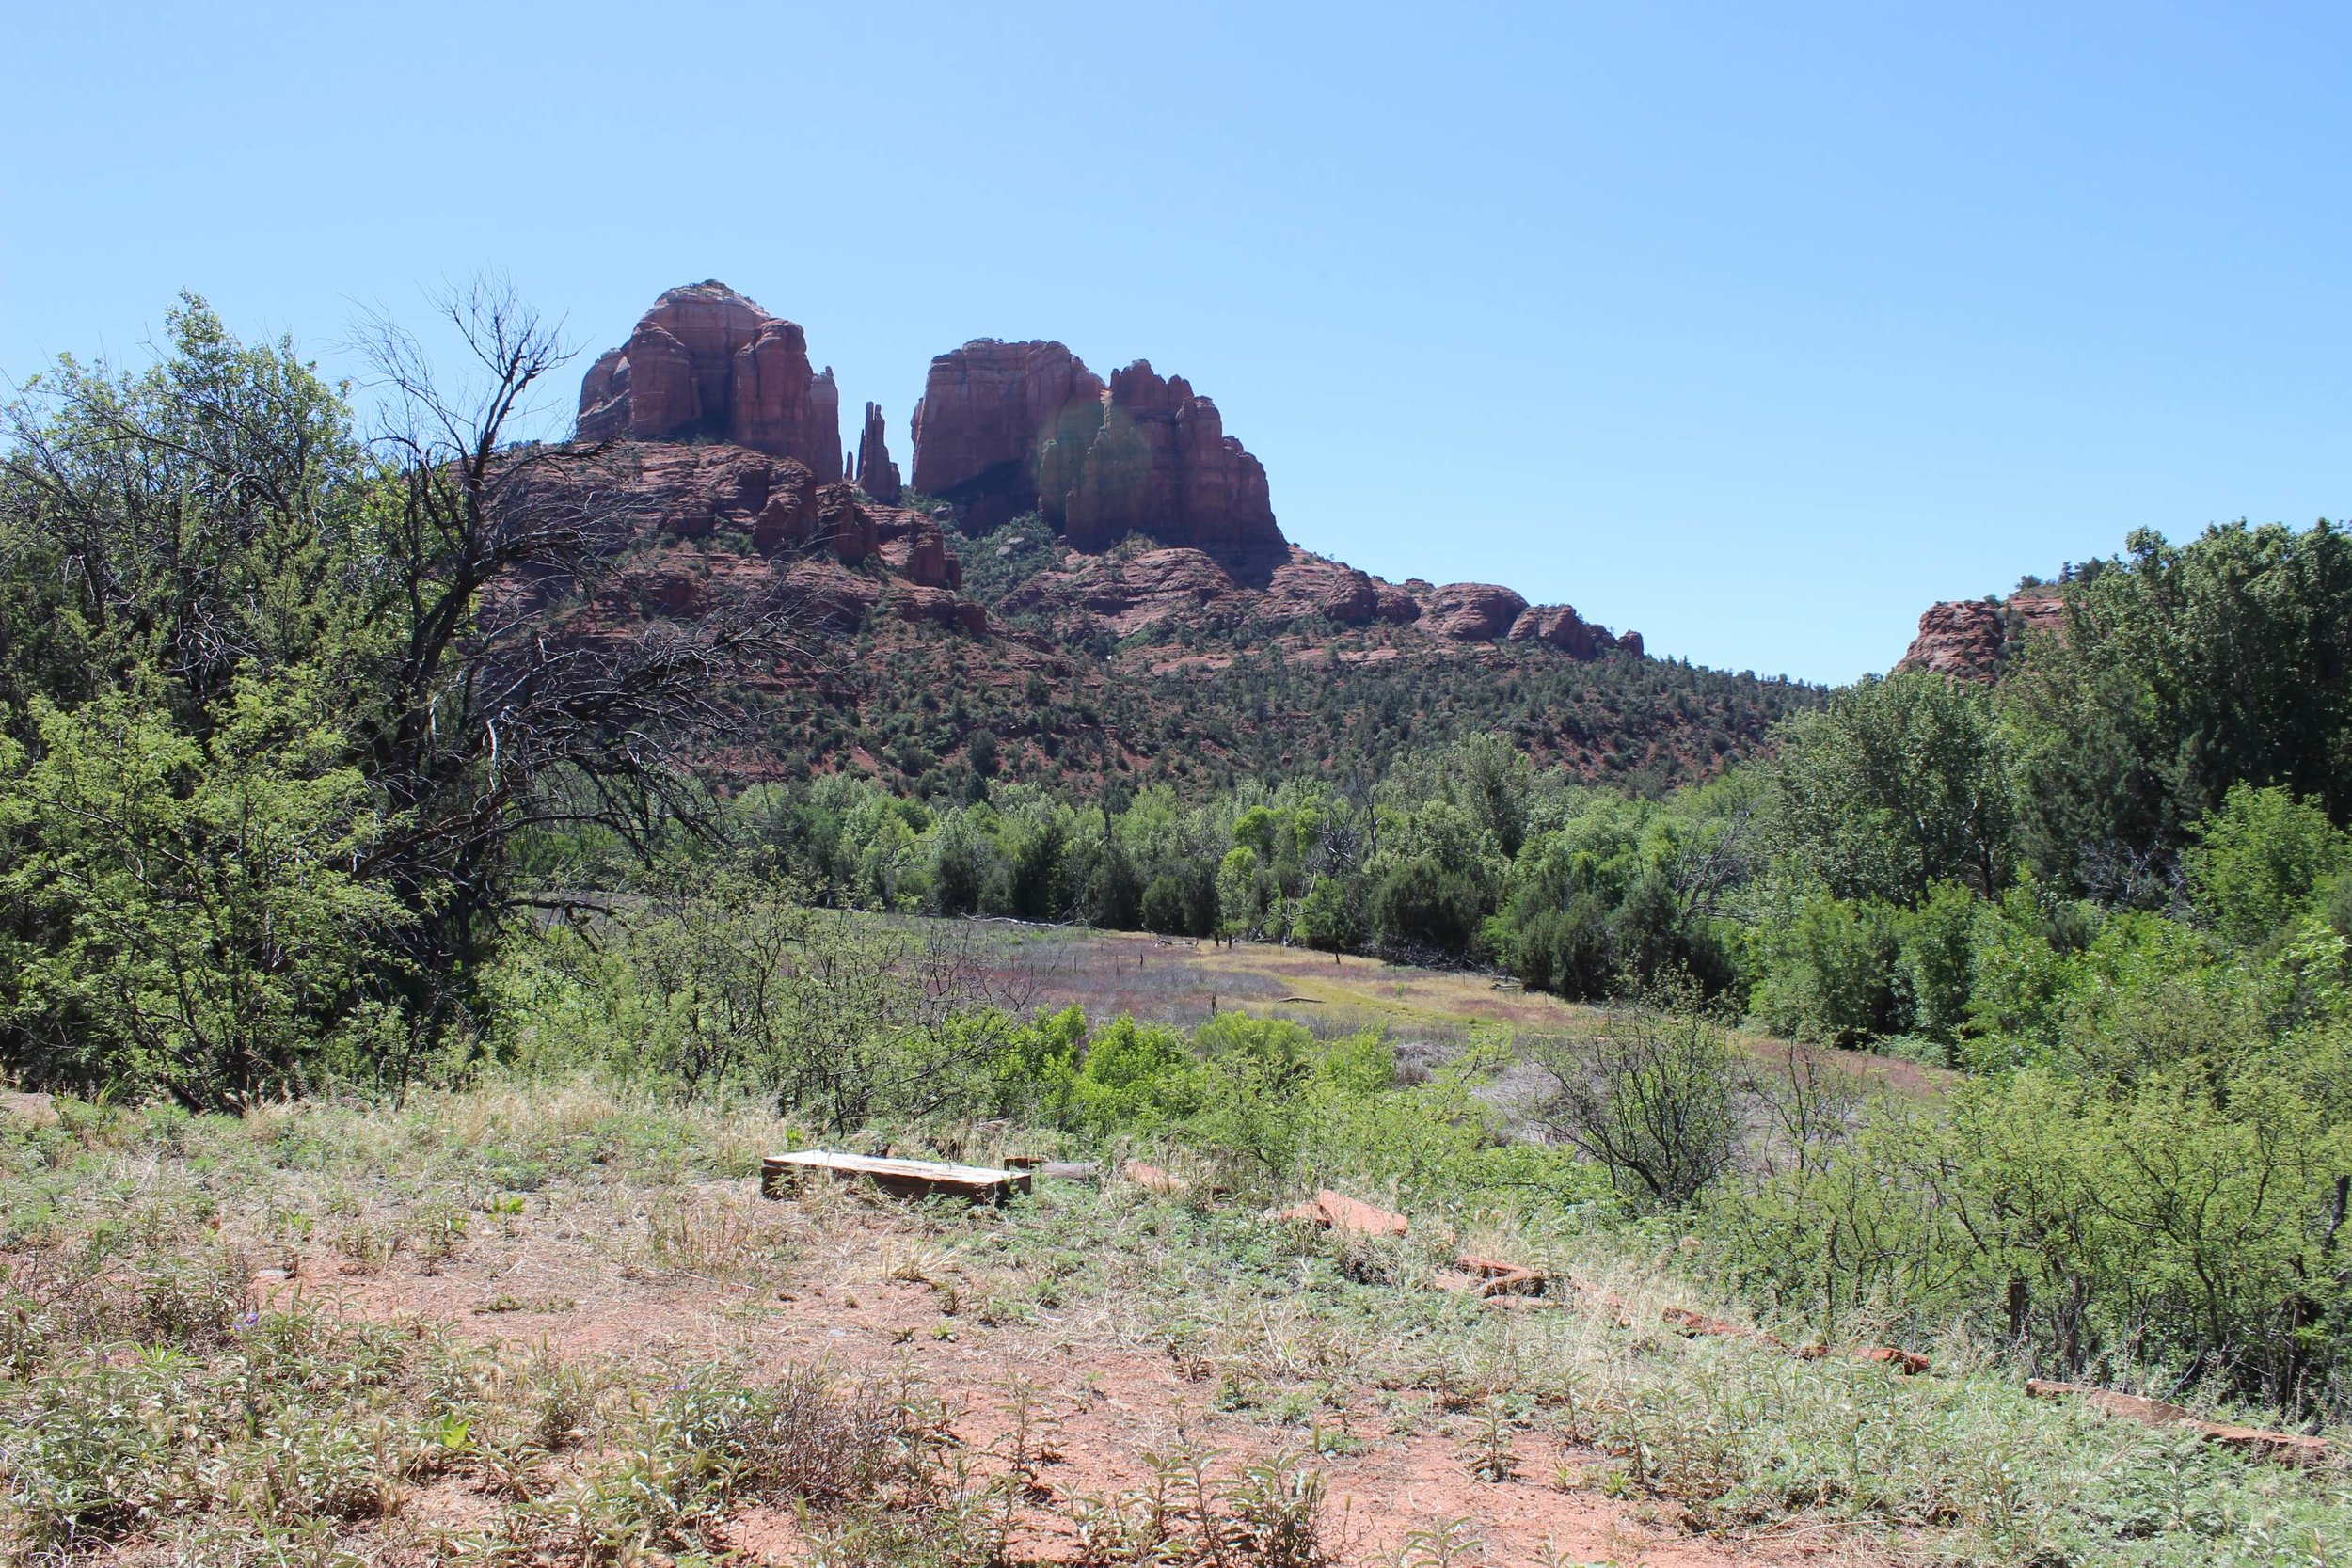 Cathedral Rock as seen from Crescent Moon Ranch